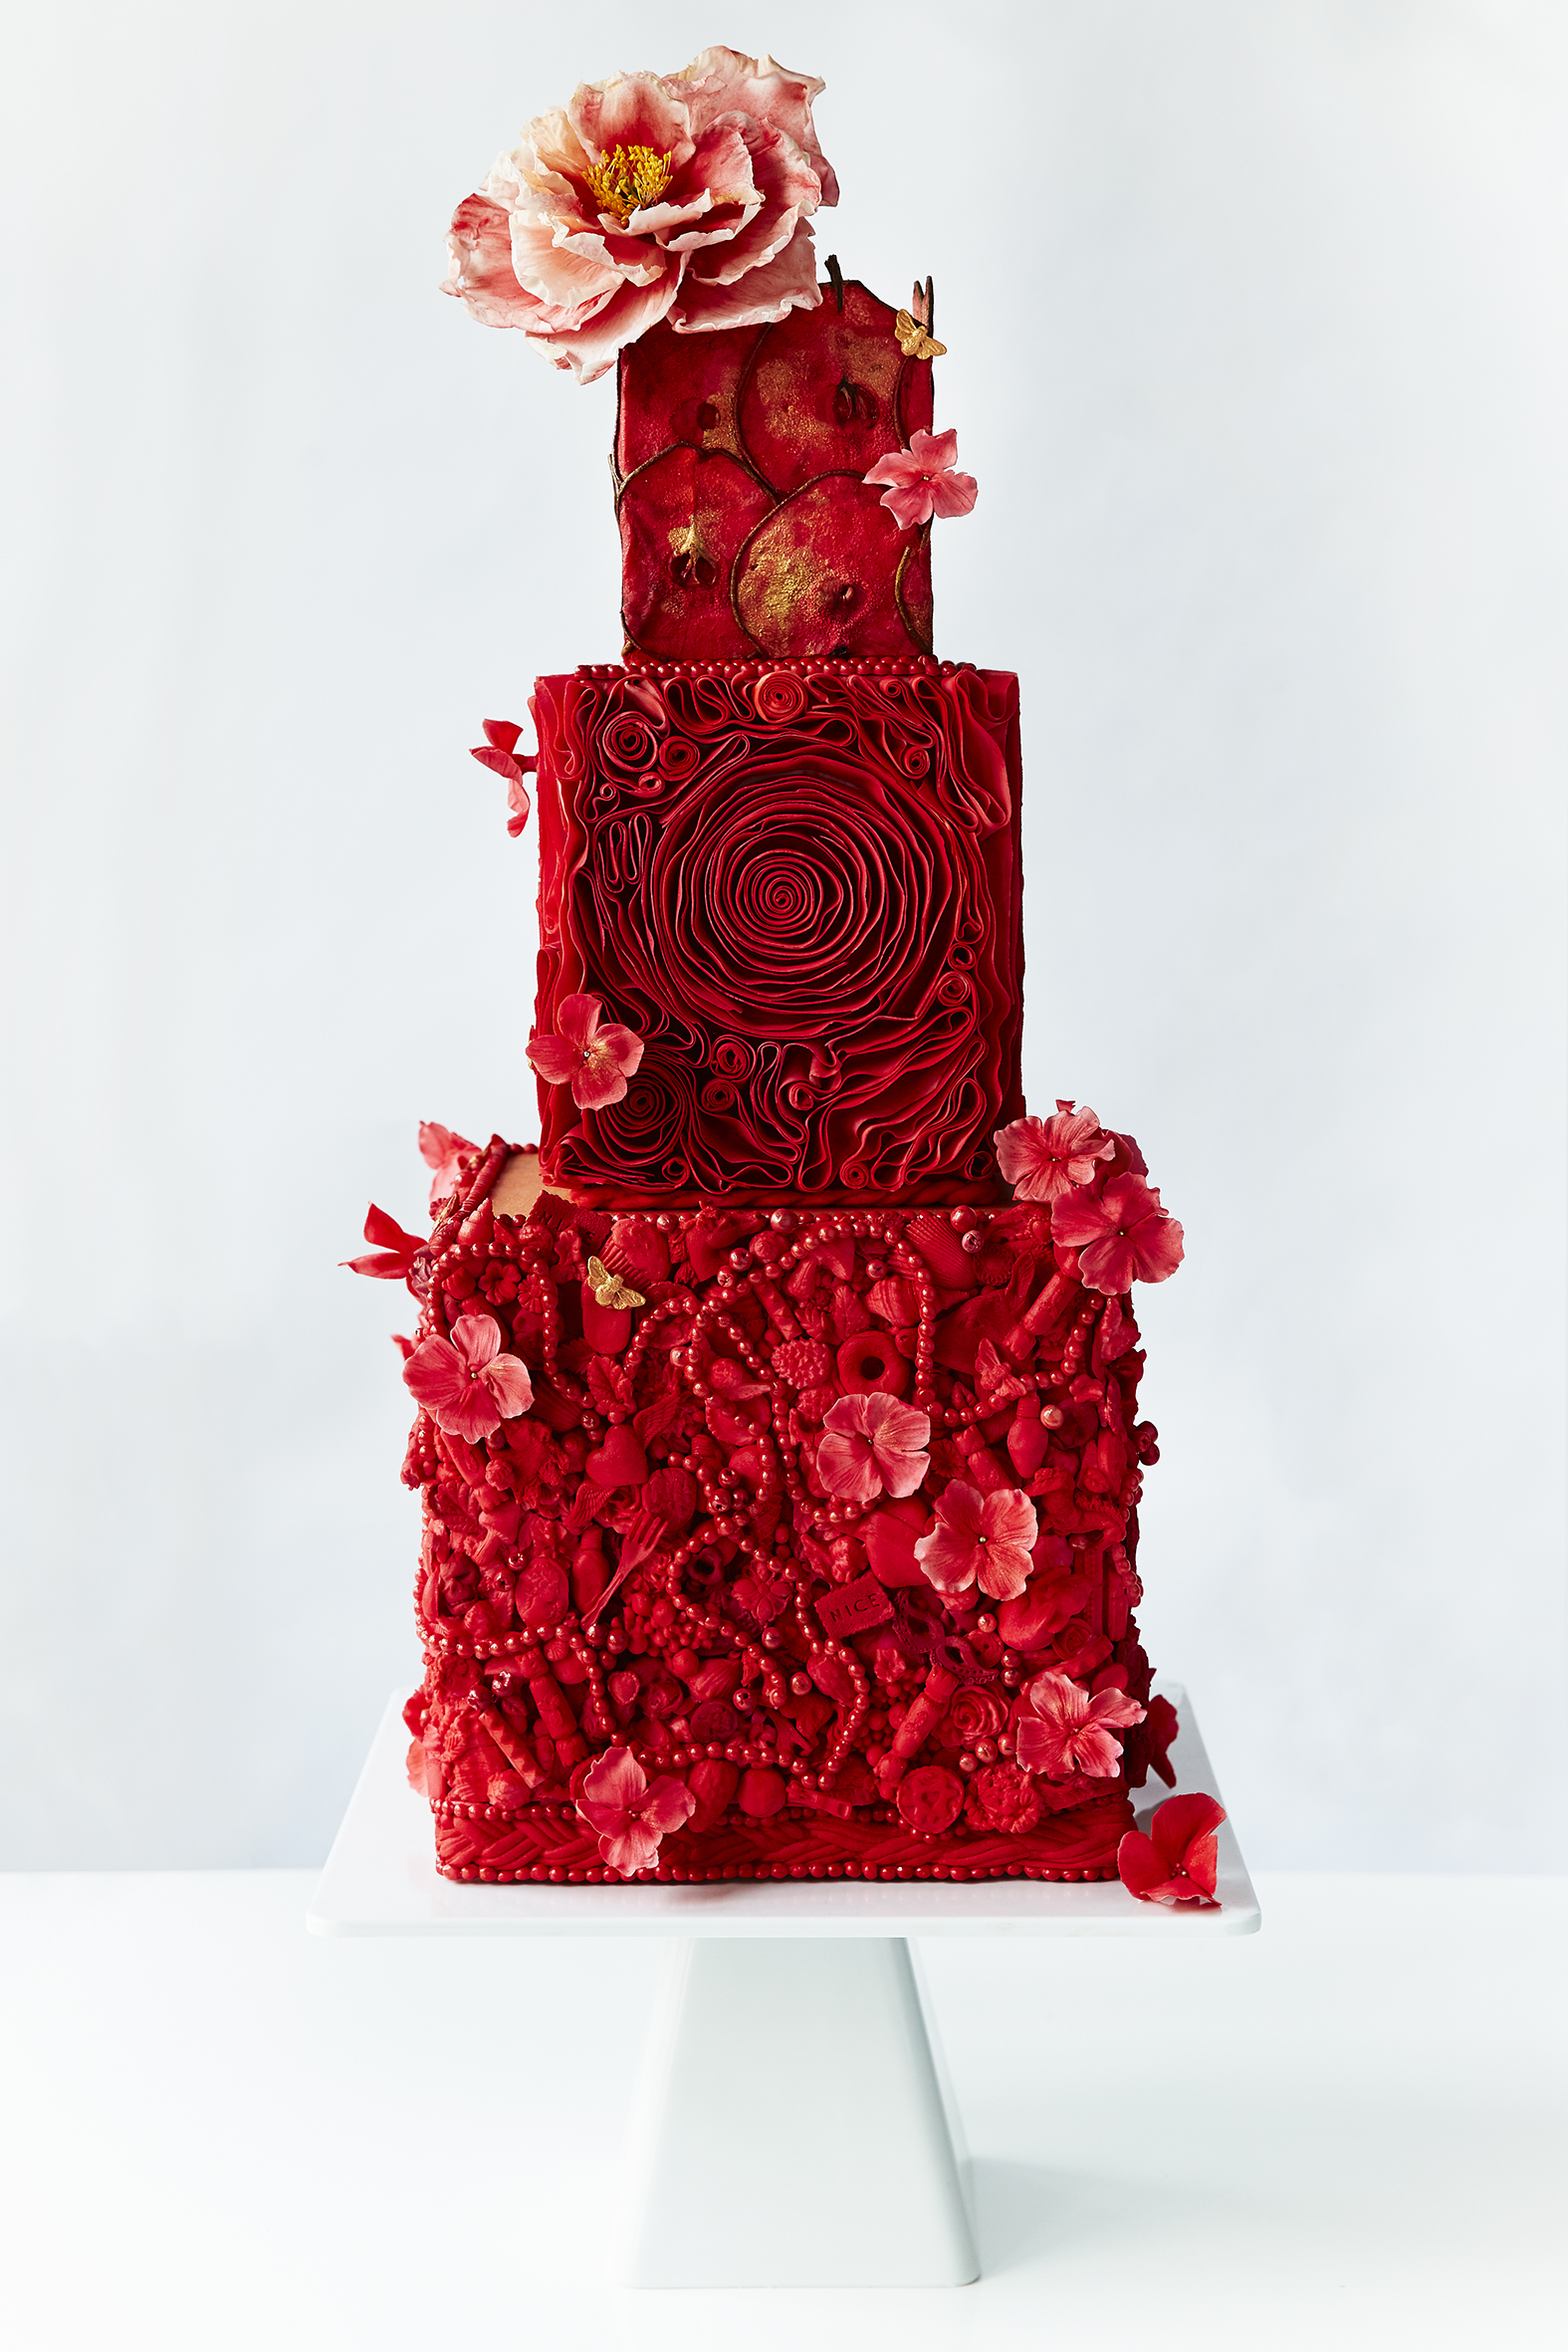 All red wedding cake fondant wedding cake with rosettes and ruffles